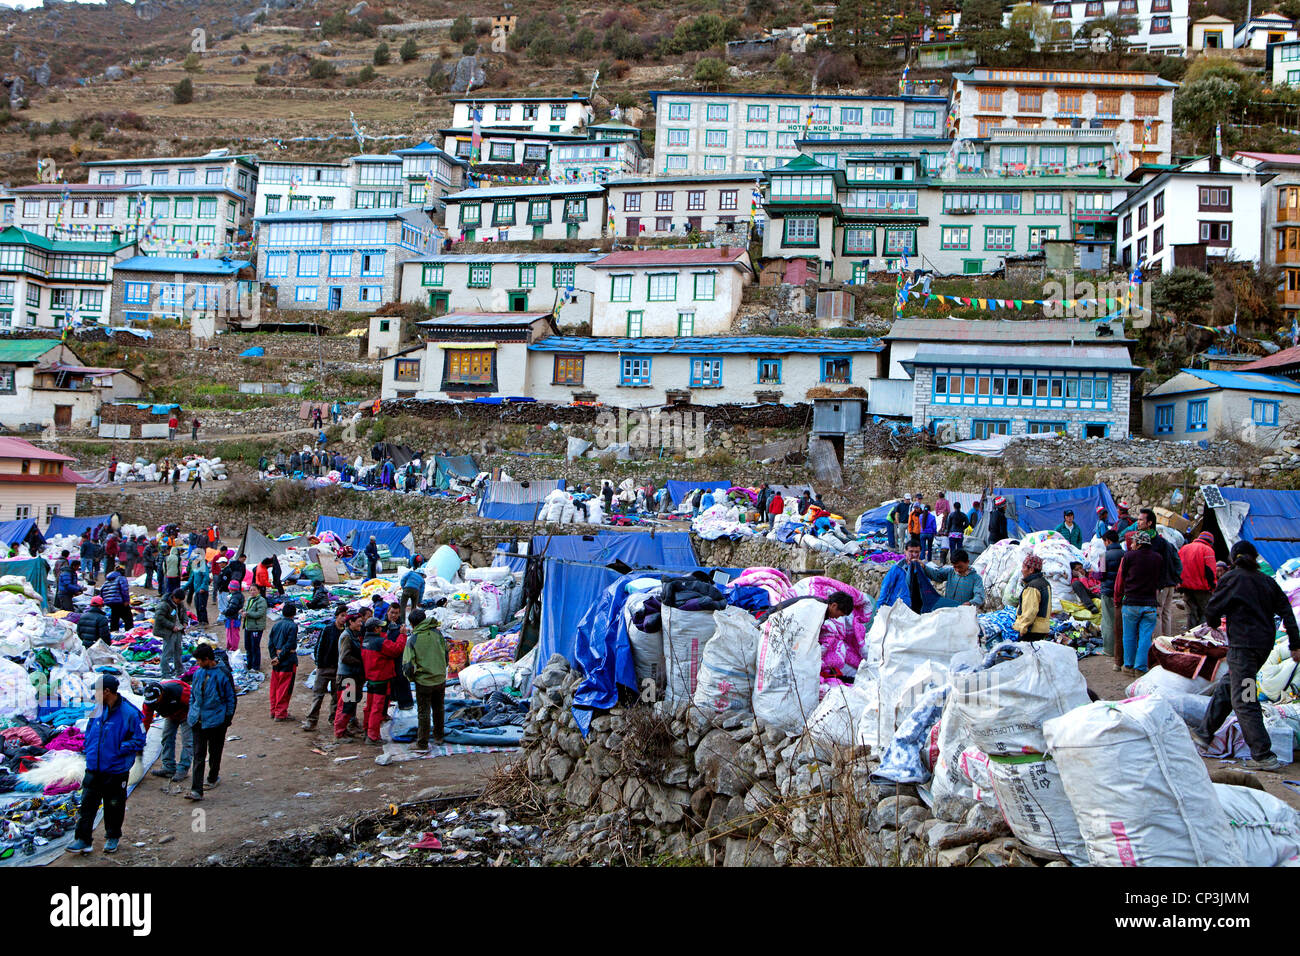 Tibetan market at Namche Bazaar, on the trail to Everest Base Camp - Stock Image